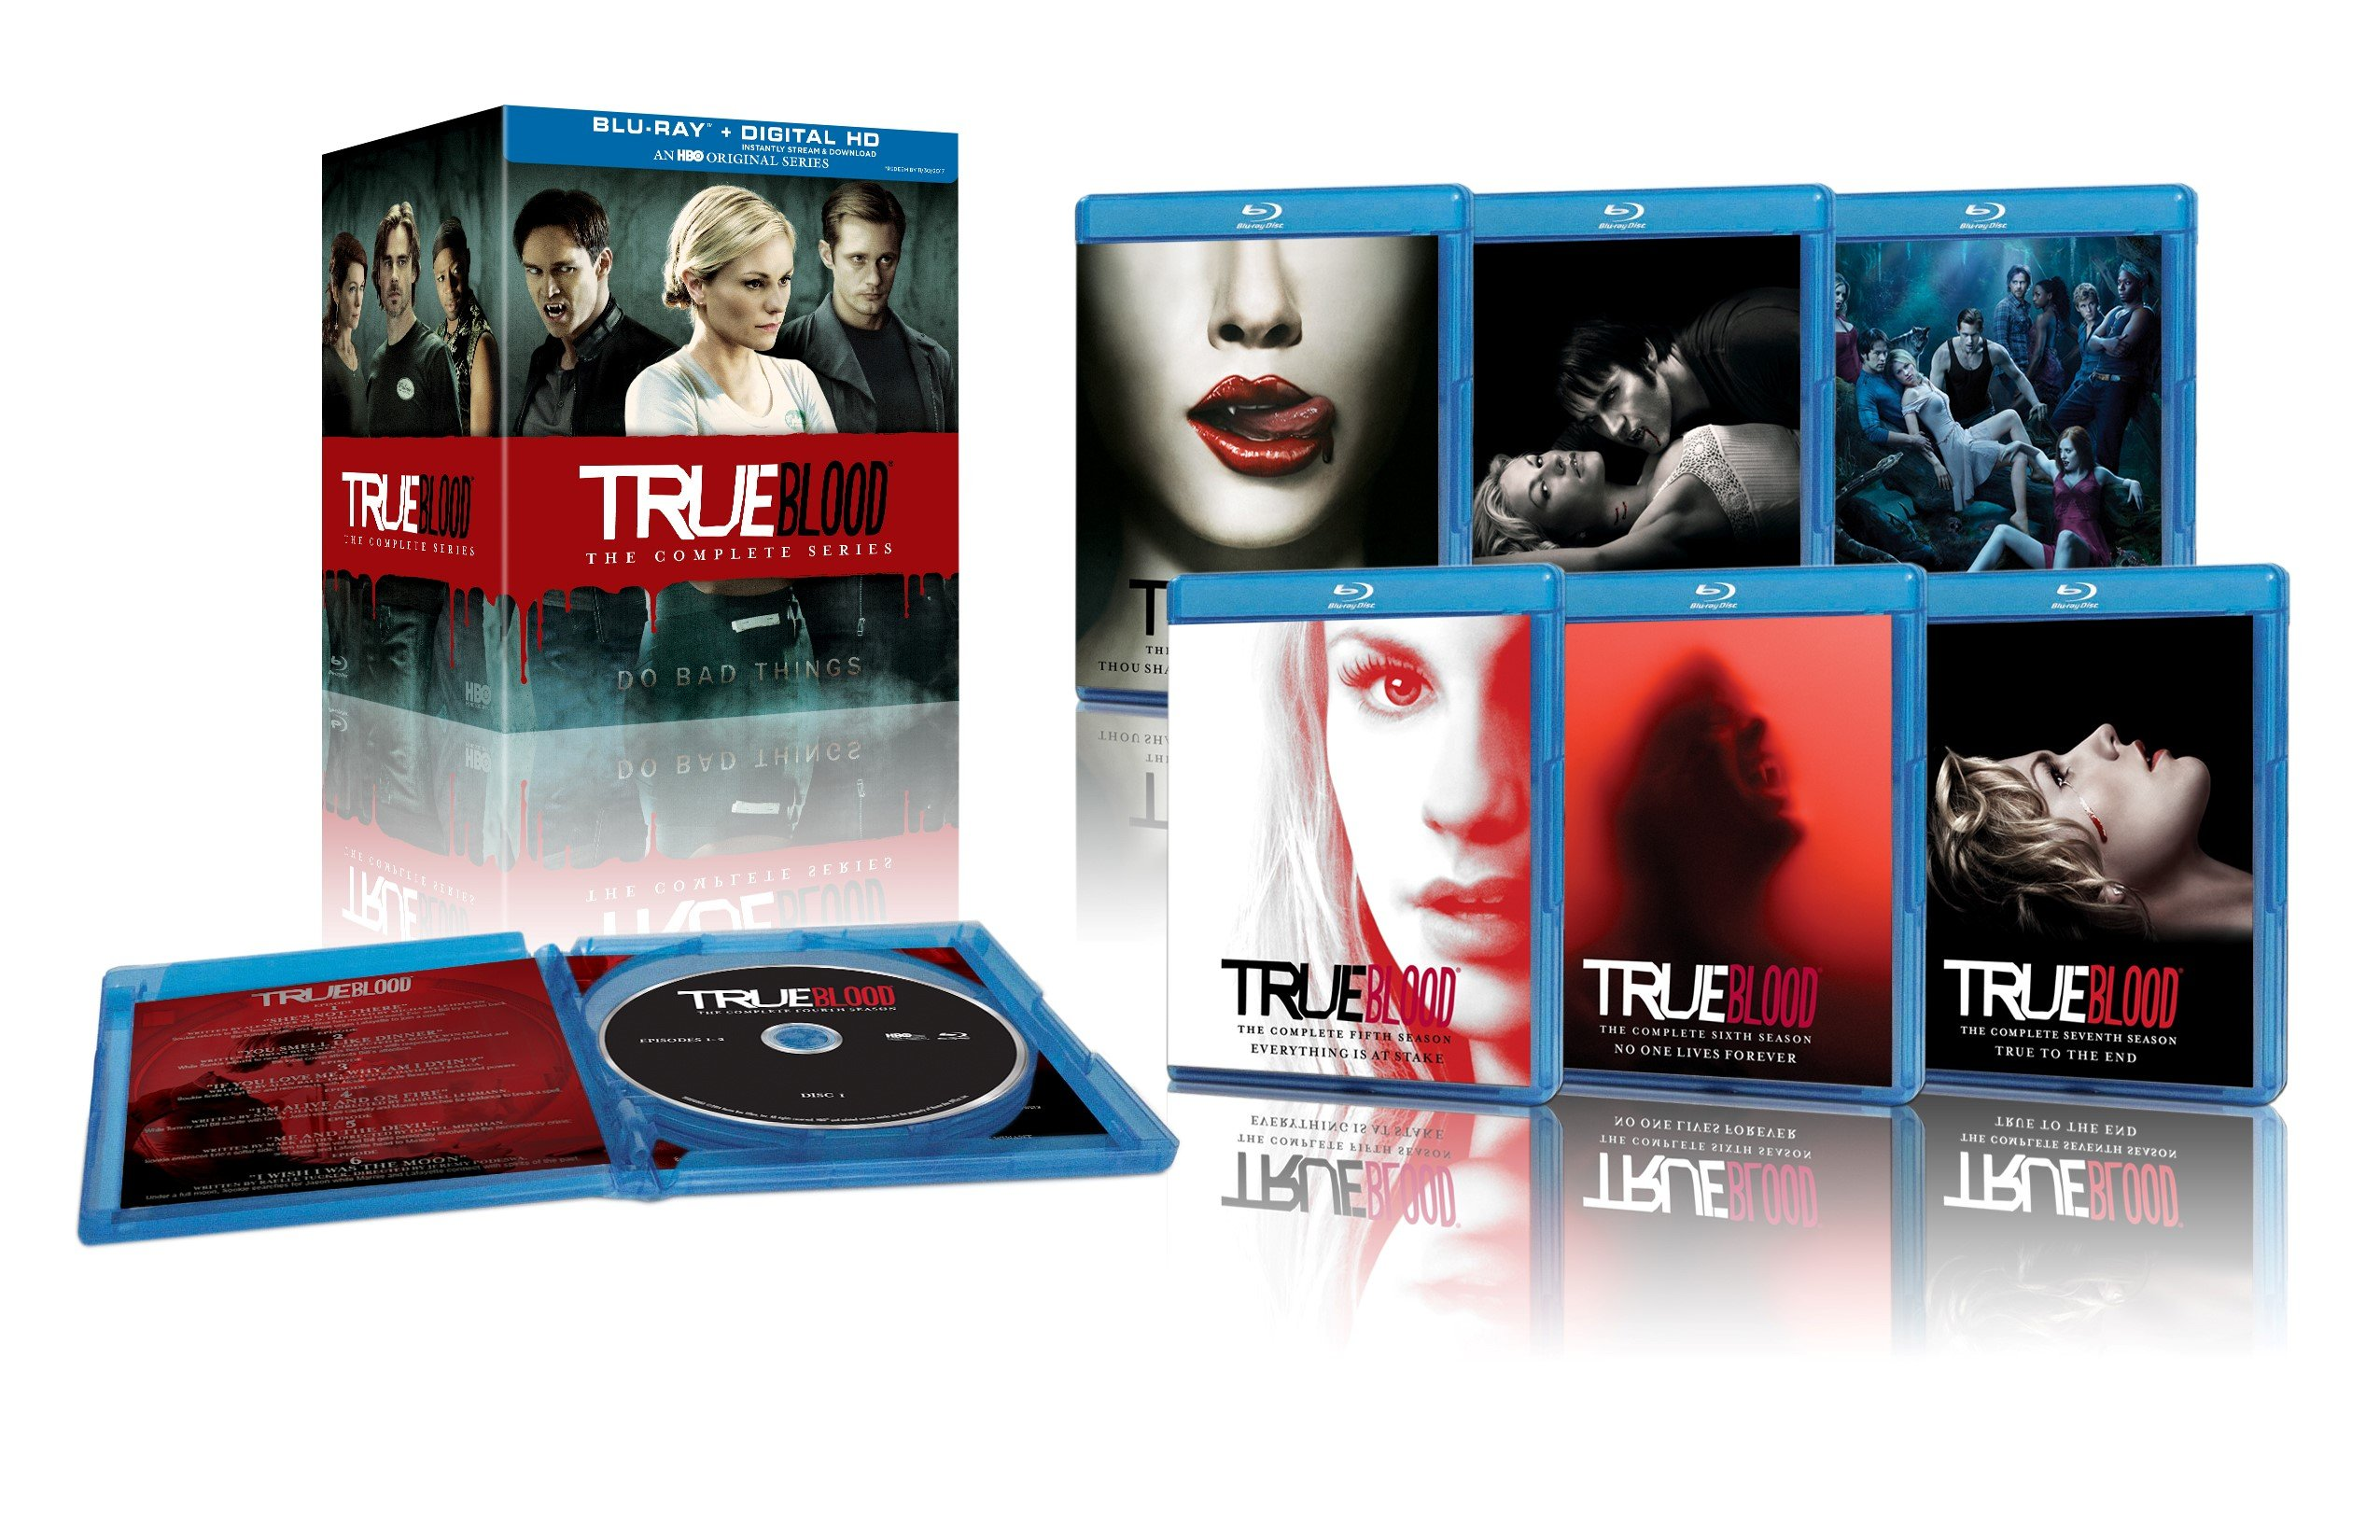 True Blood: The Complete Series (Blu-ray) by HBO HOME VIDEO